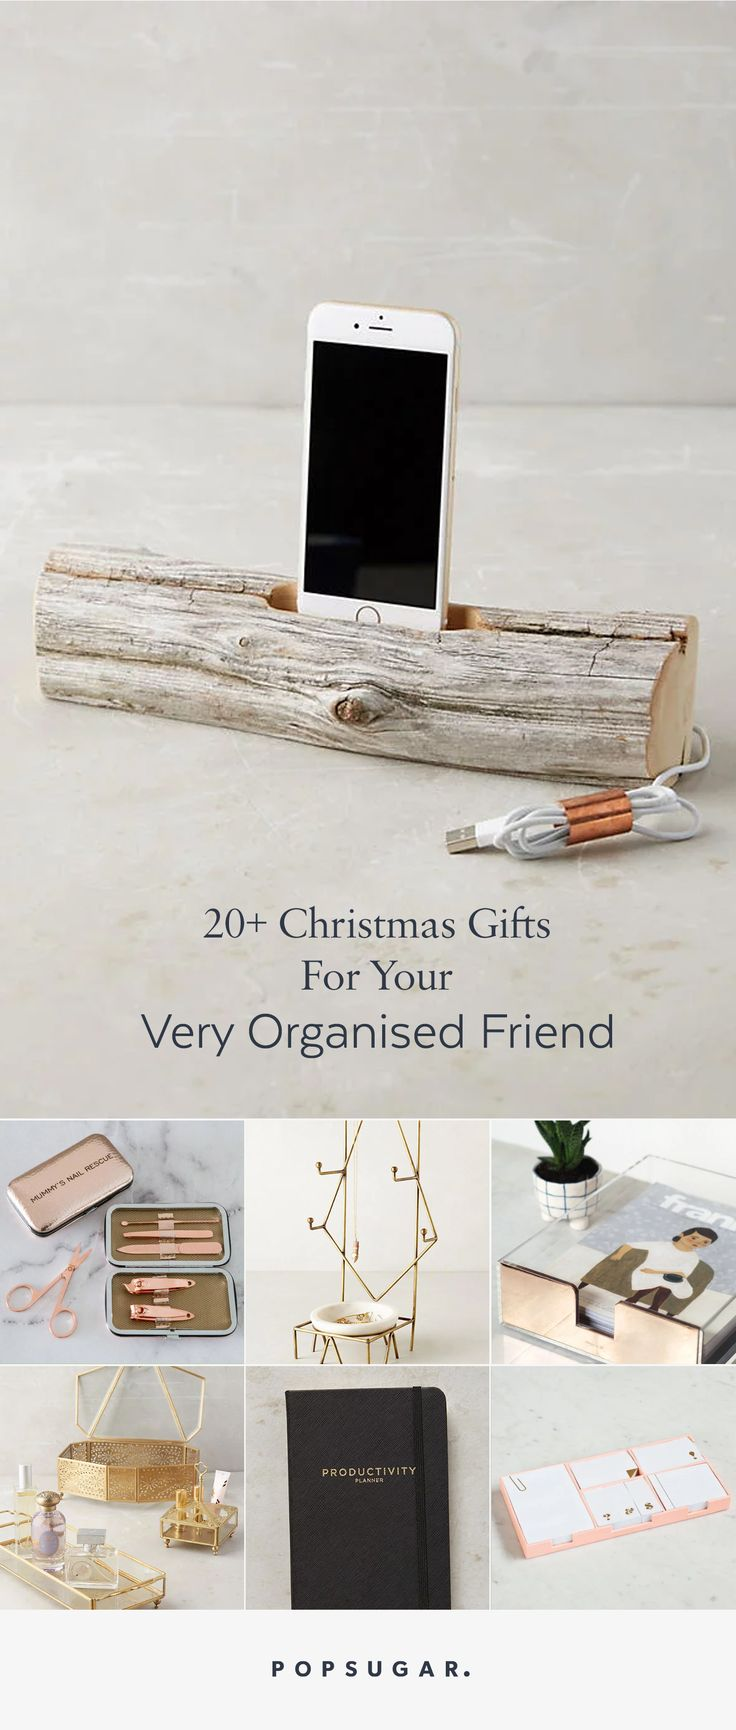 Popsugar christmas gift and present guide for organisation of work and person space.